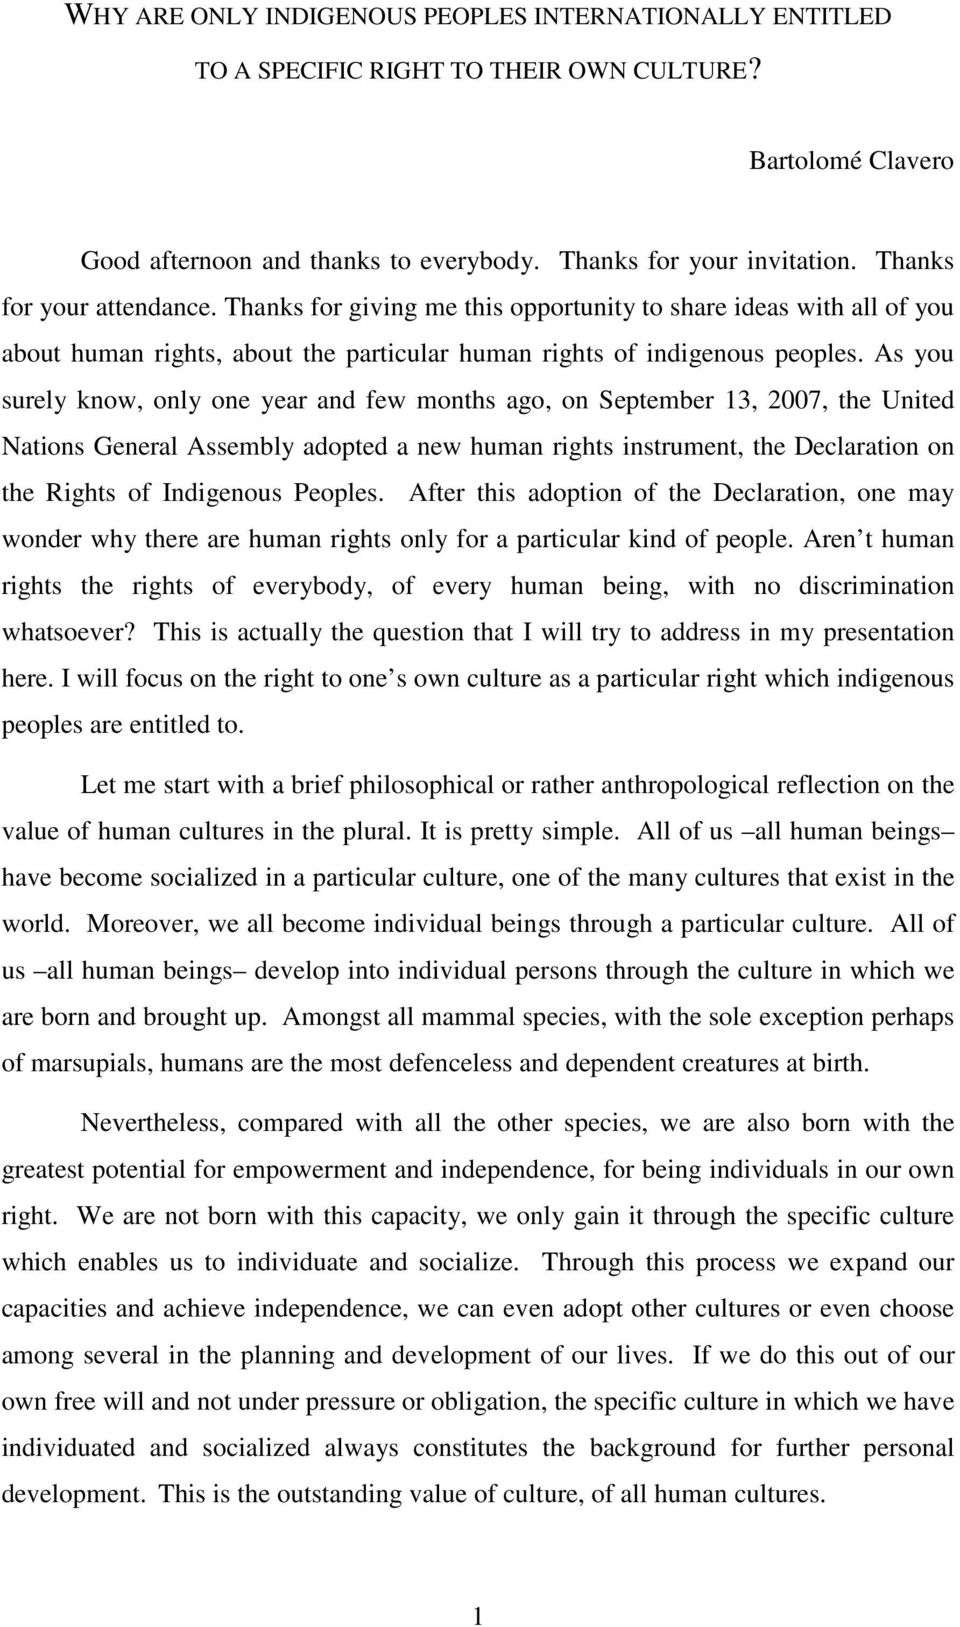 As you surely know, only one year and few months ago, on September 13, 2007, the United Nations General Assembly adopted a new human rights instrument, the Declaration on the Rights of Indigenous